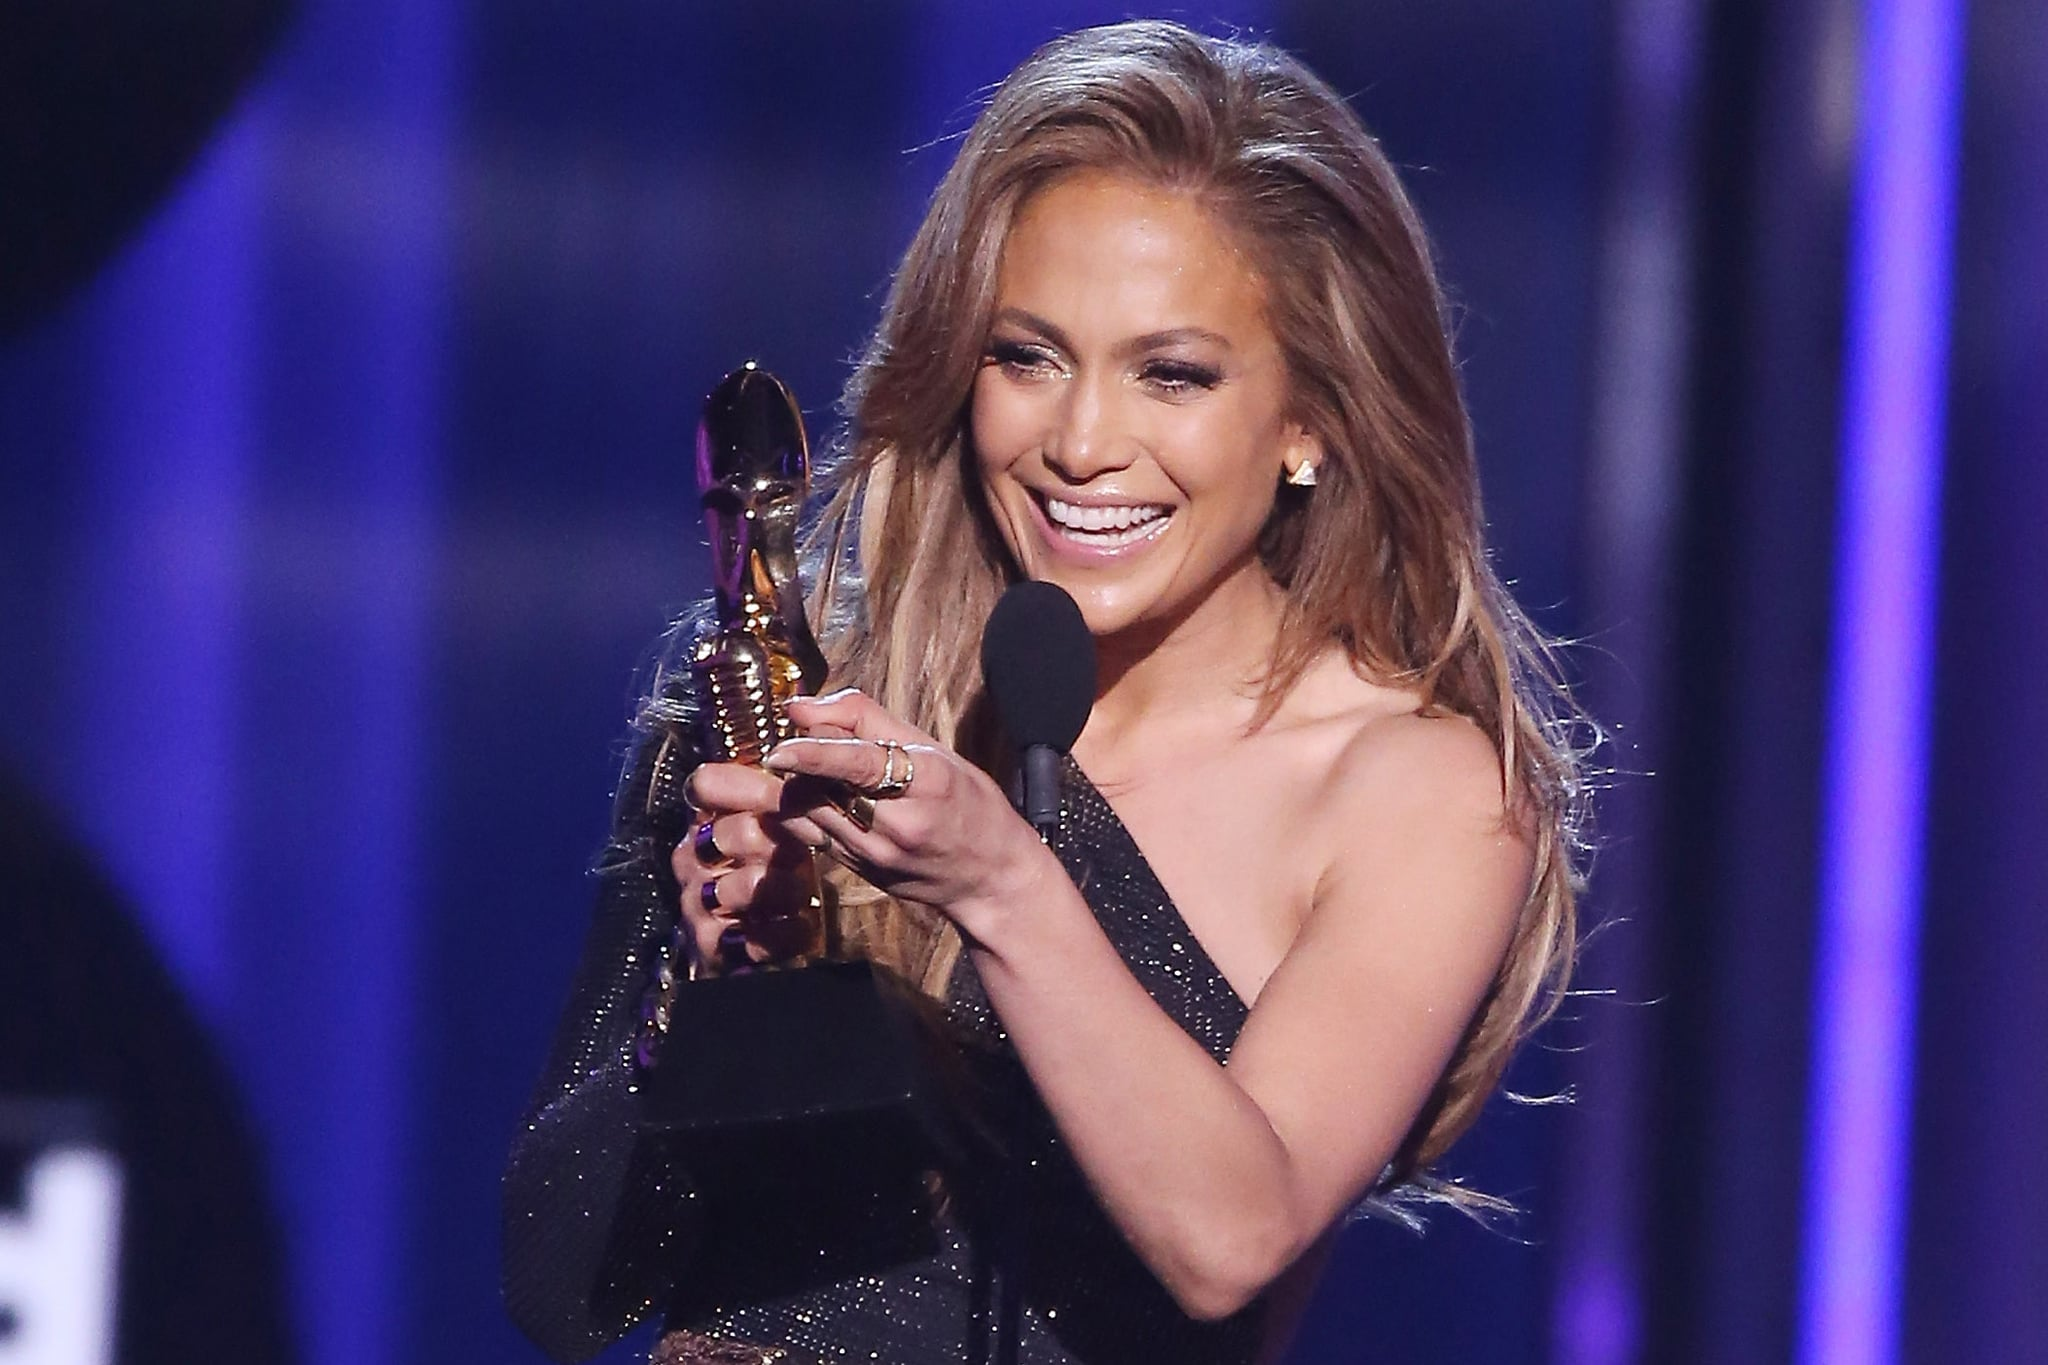 LAS VEGAS, NV - MAY 18:  Jennifer Lopez accepts the Icon Award onstage during the 2014 Billboard Music Awards held at MGM Grand Garden Arena on May 18, 2014 in Las Vegas, Nevada.  (Photo by Michael Tran/FilmMagic)